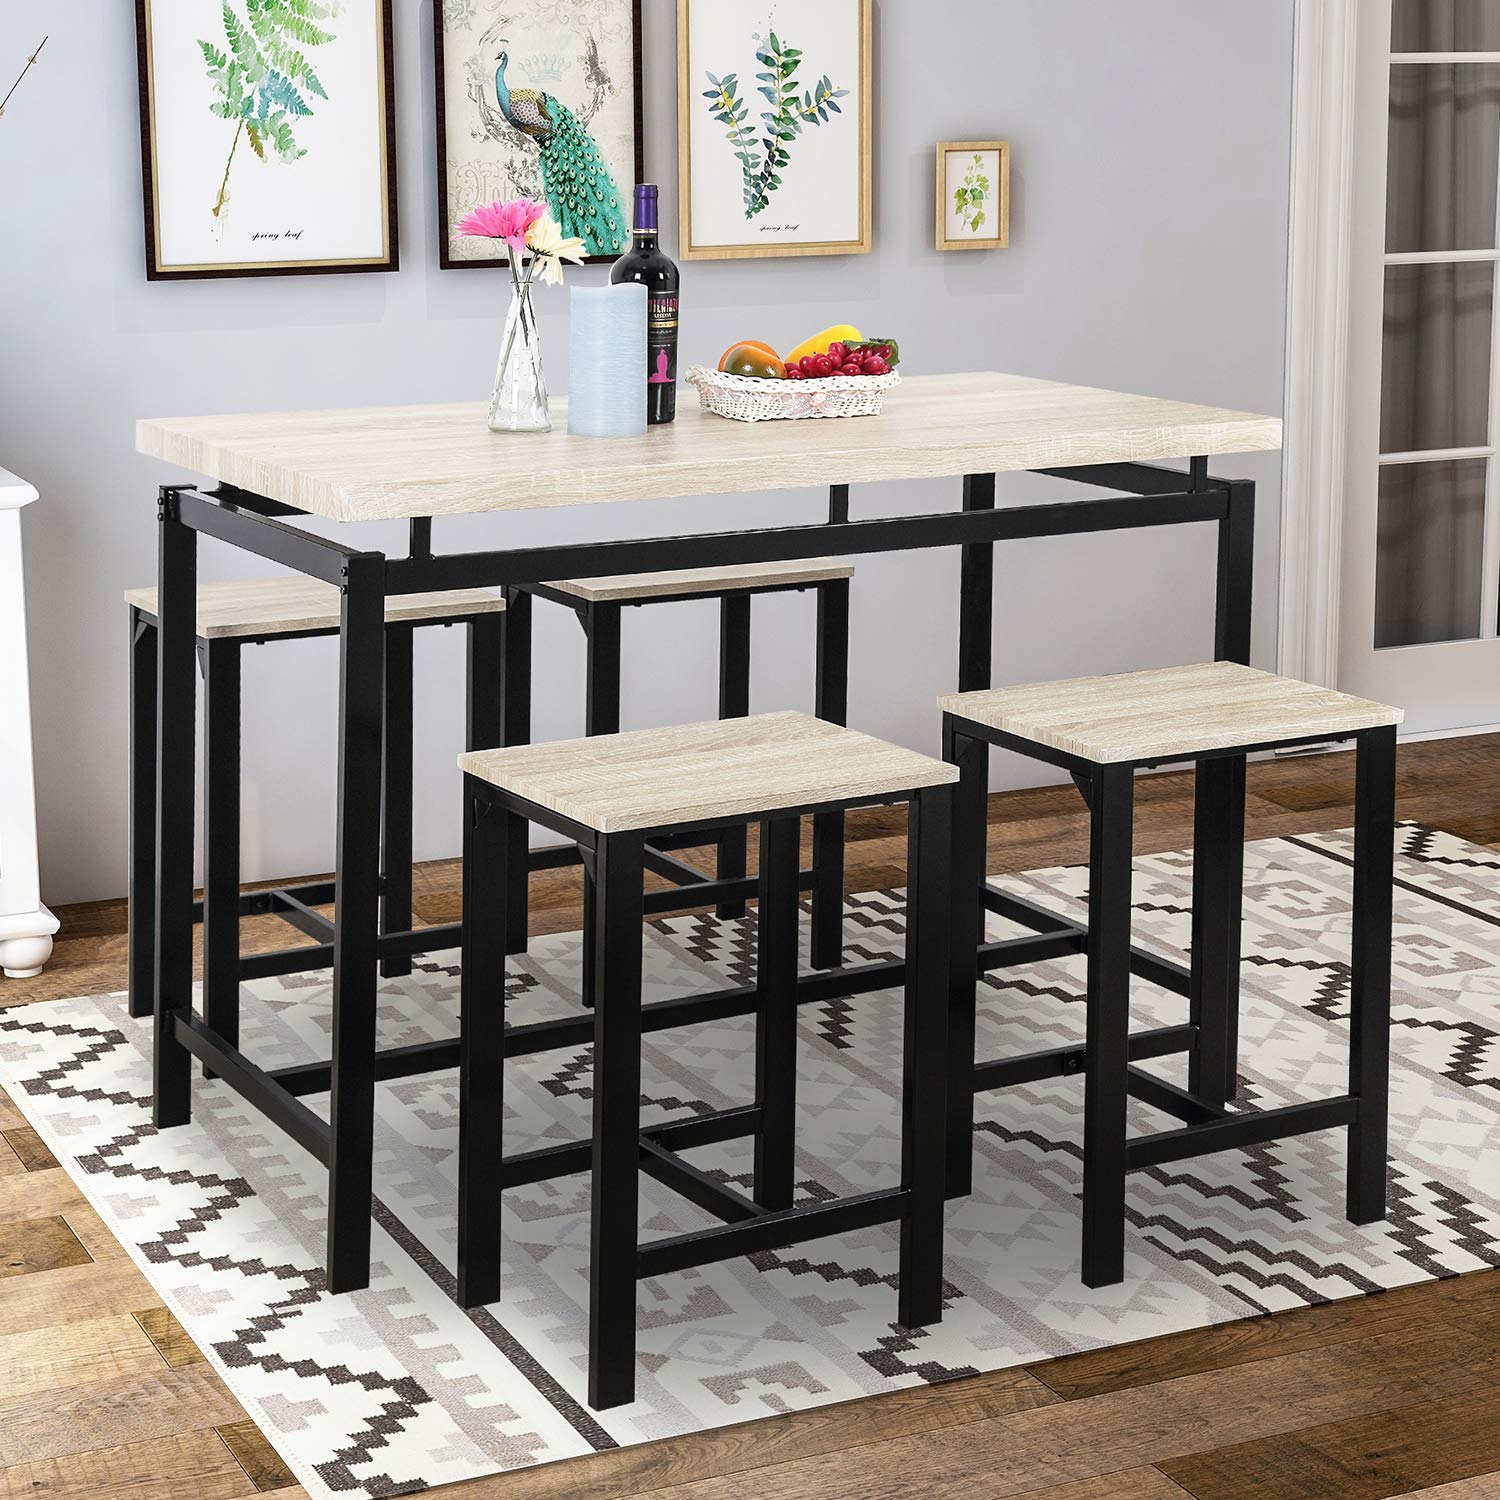 Rockjame 5 Piece Counter Height Pub Table Set with 4 Chairs for The Bar Kitchen Room Dining Room and Living Room Dining Table Set Breakfast Nook Espresso